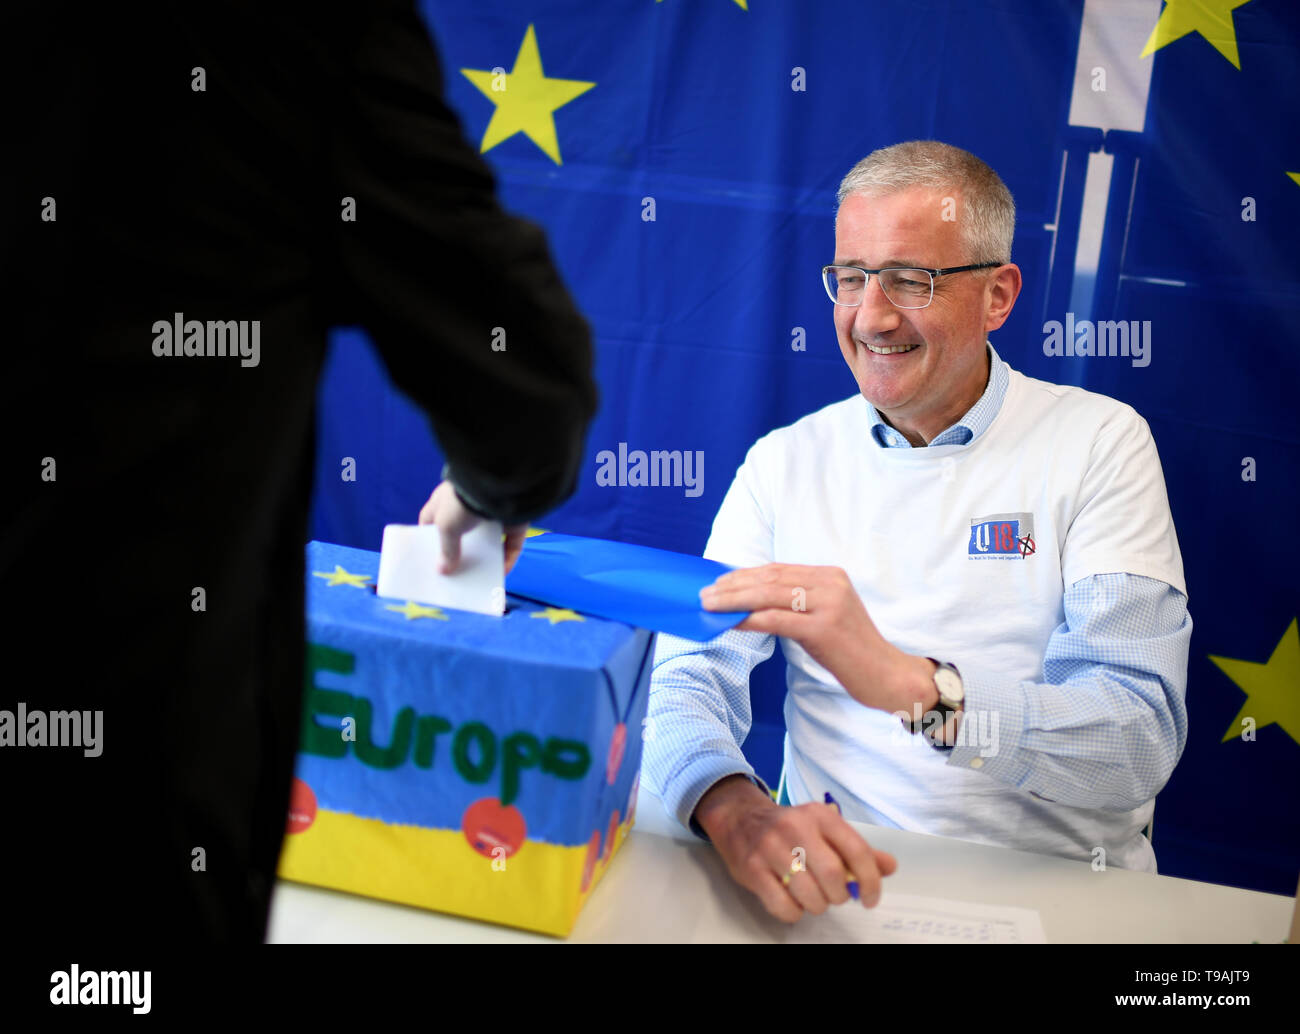 Berlin, Germany. 17th May, 2019. Reinhard Fischer, election worker, receives the ballot papers at a polling station during the U18 European elections. Credit: Britta Pedersen/dpa-Zentralbild/dpa/Alamy Live News Stock Photo